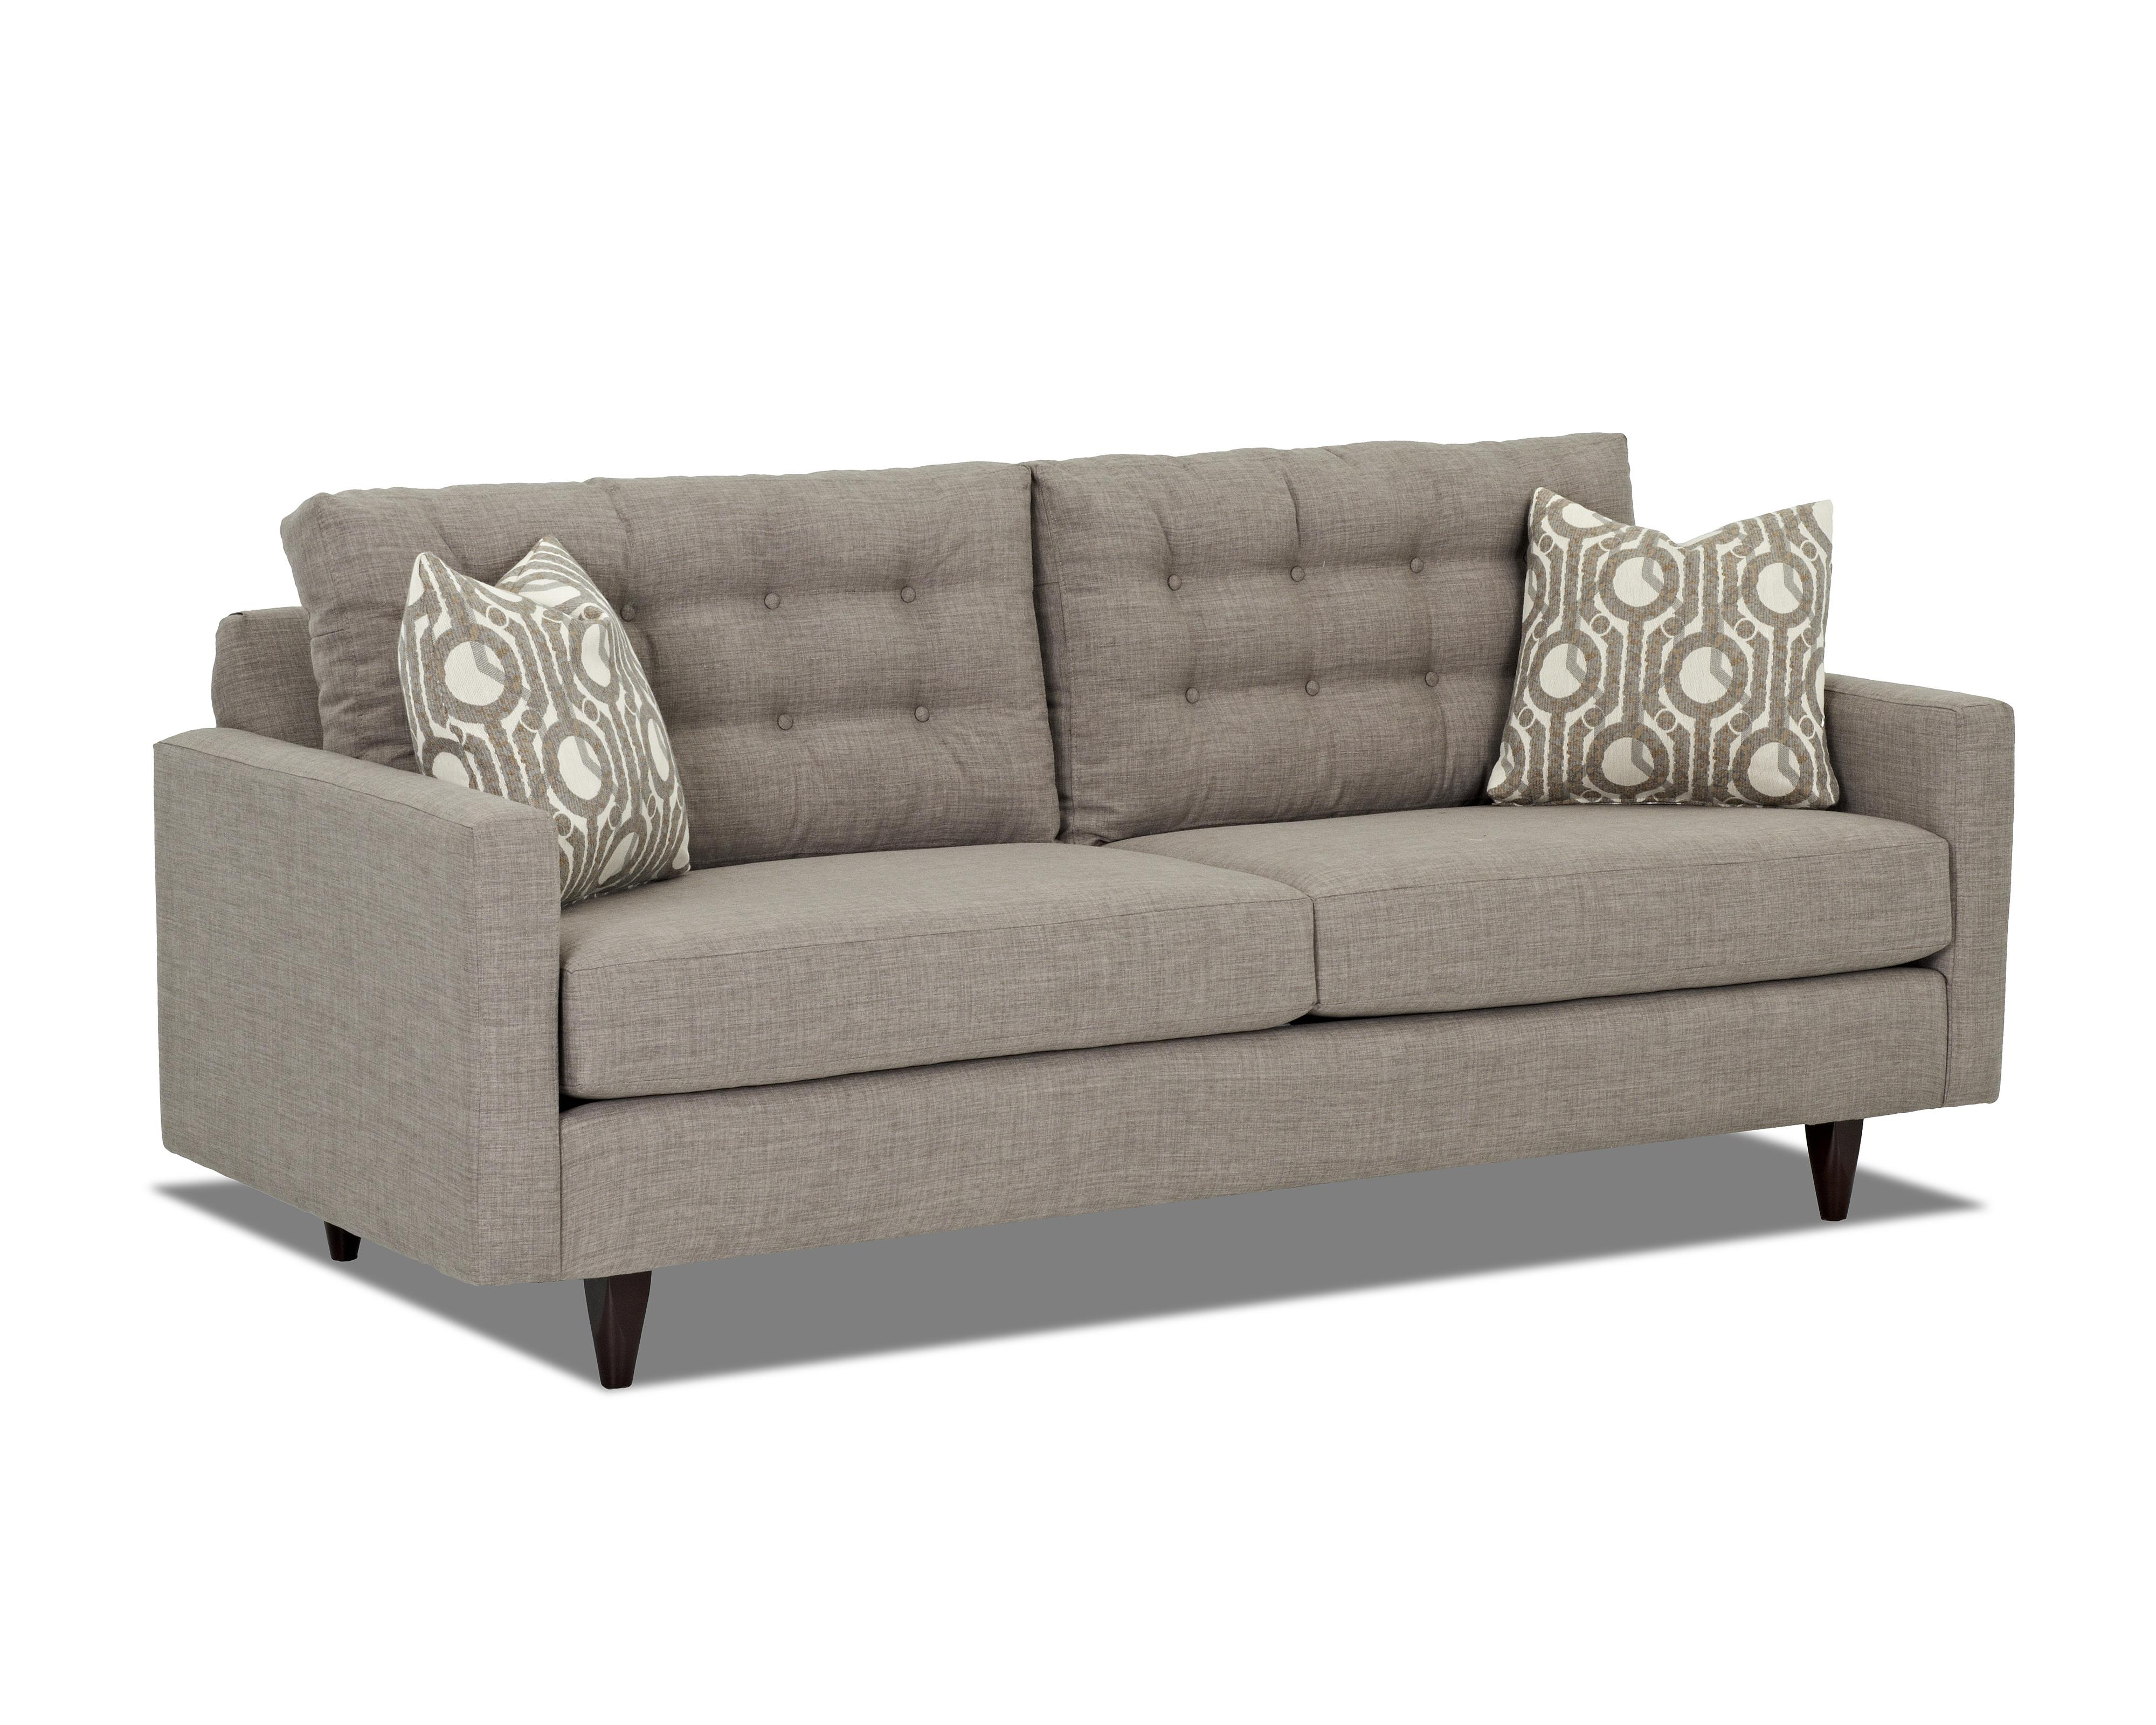 Contemporary Sofa With Tapered Legs And Tufted Loose Back Cushions